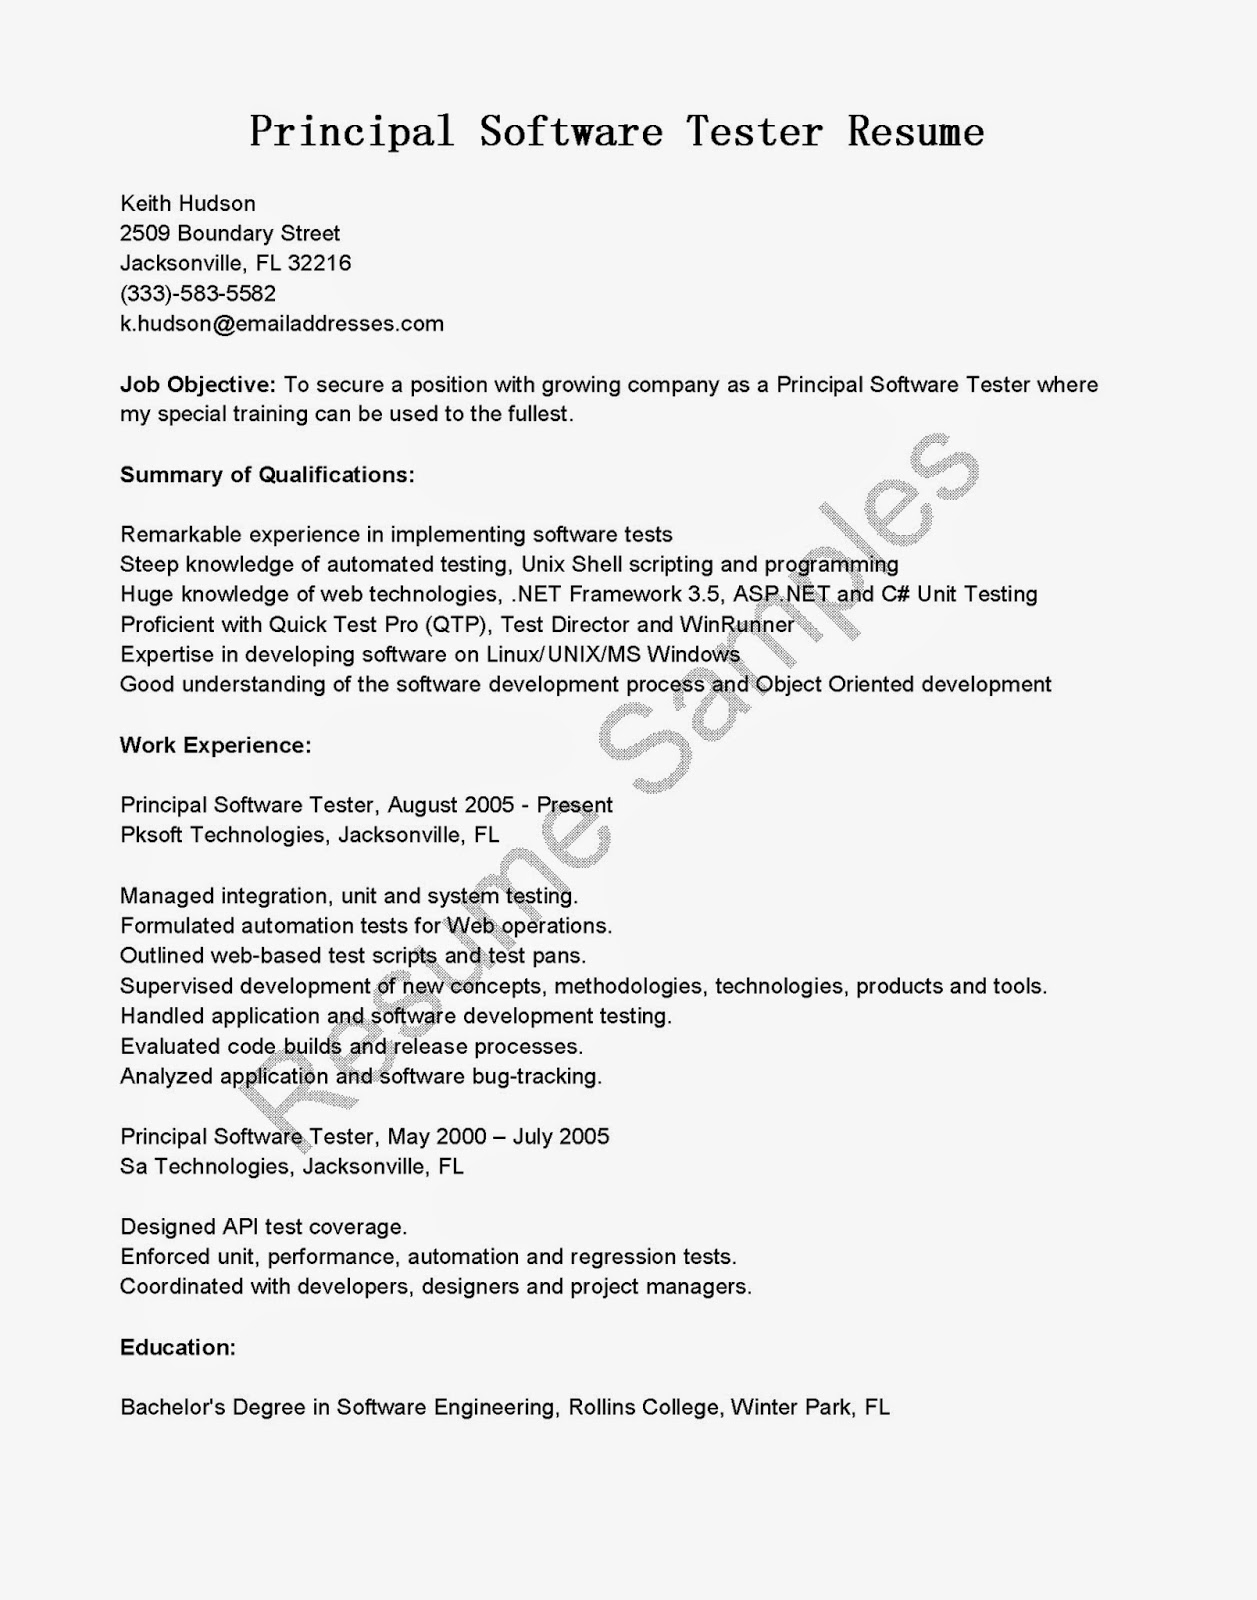 Software Tester Resume Sample Resume Samples Principal Software Tester Resume Sample